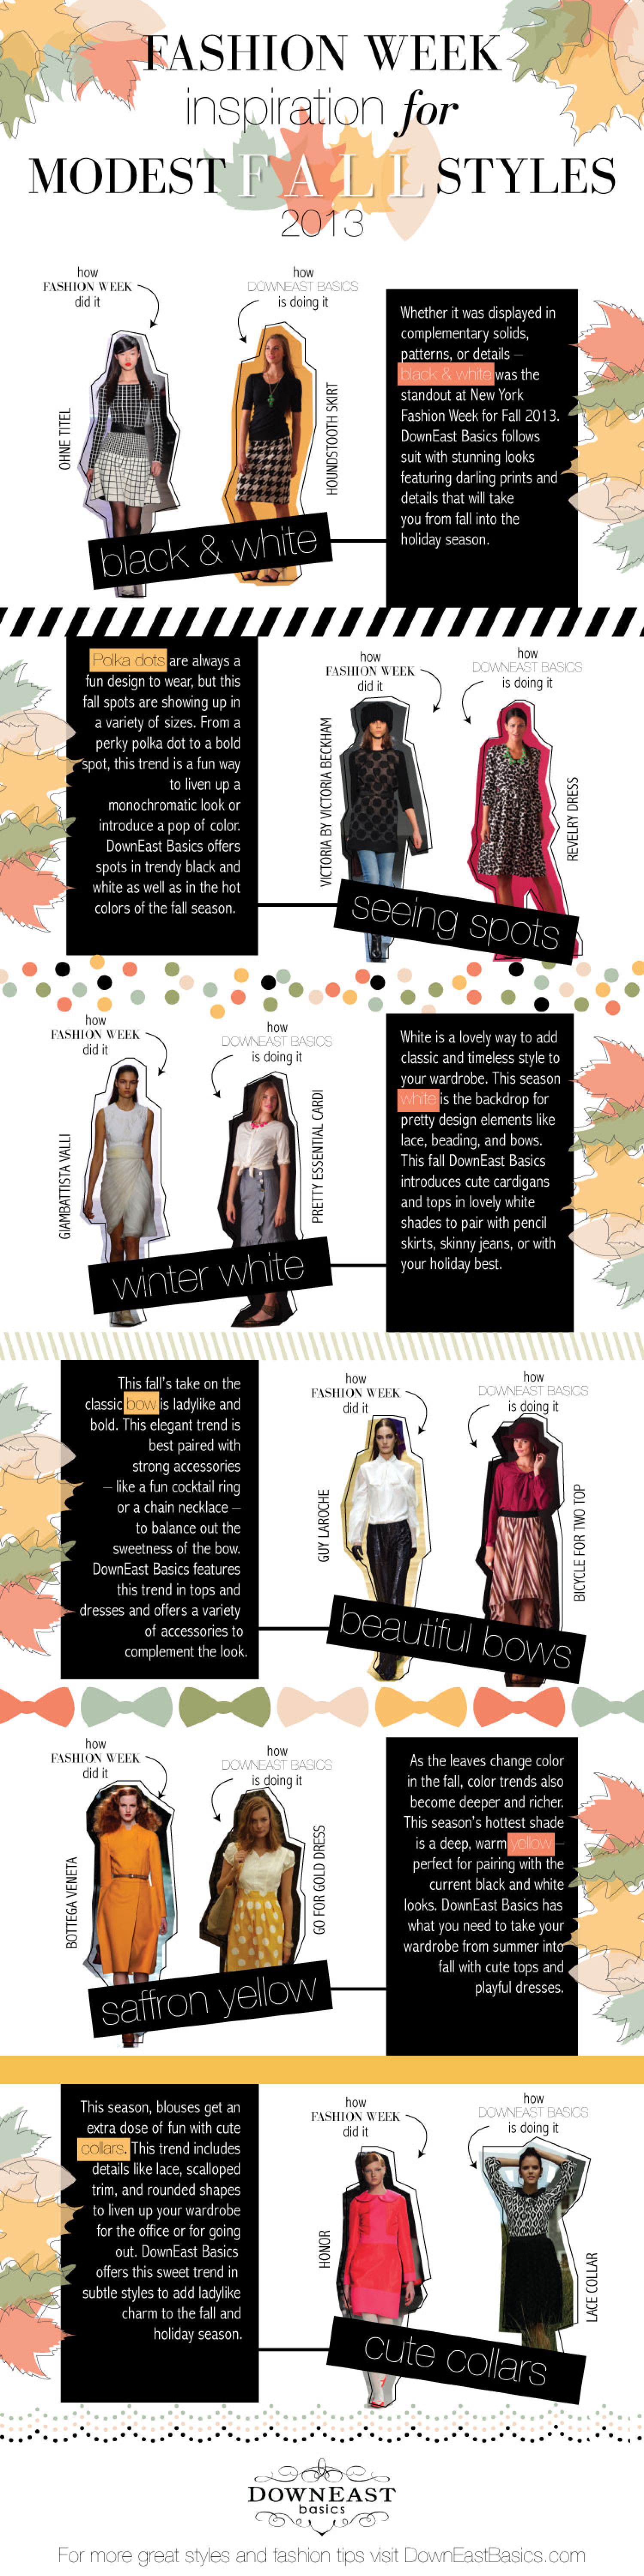 Fashion Week Inspiration for Modest Fall Styles 2013 Infographic